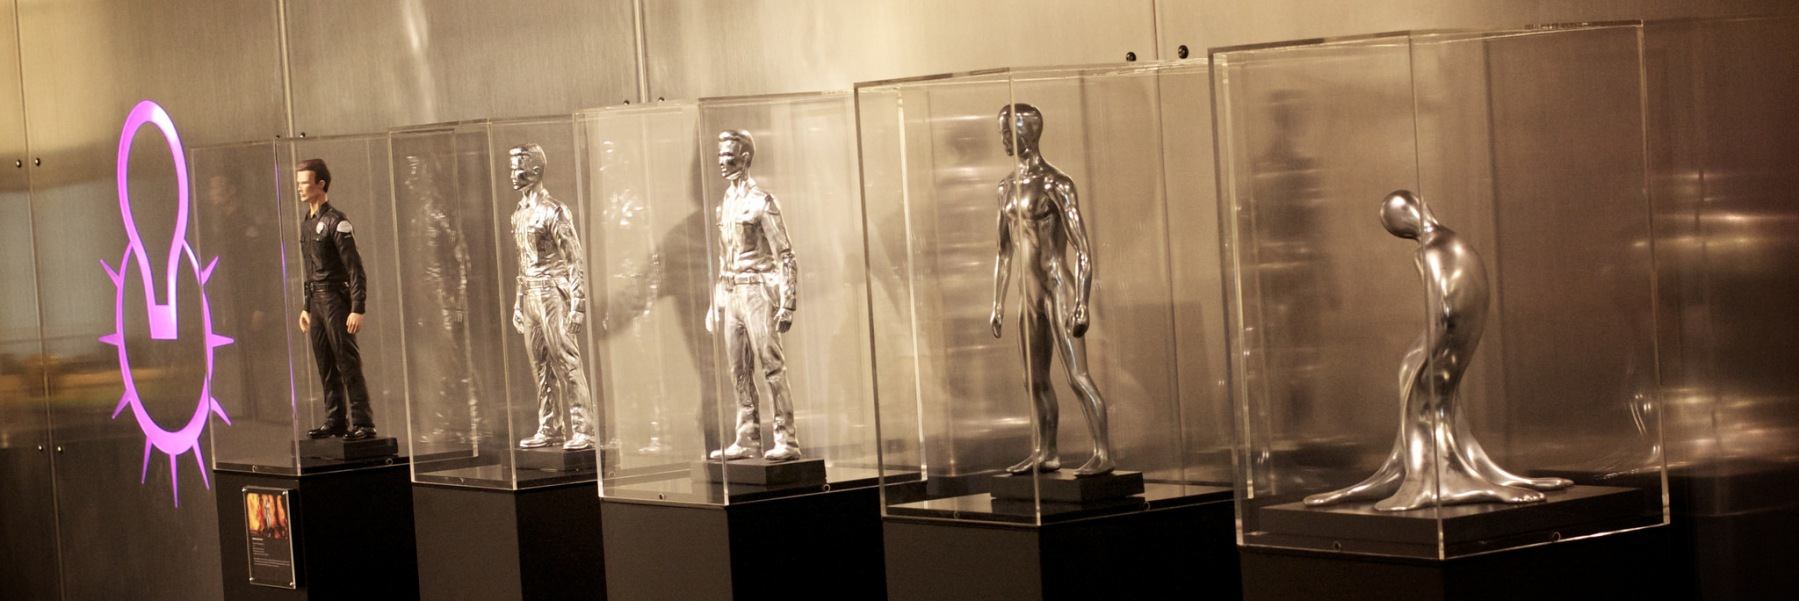 """Phases of the T-1000 Terminator from the """"Terminator 2"""" movie. (Photo credit: Flickr, Marcin Wichary)"""